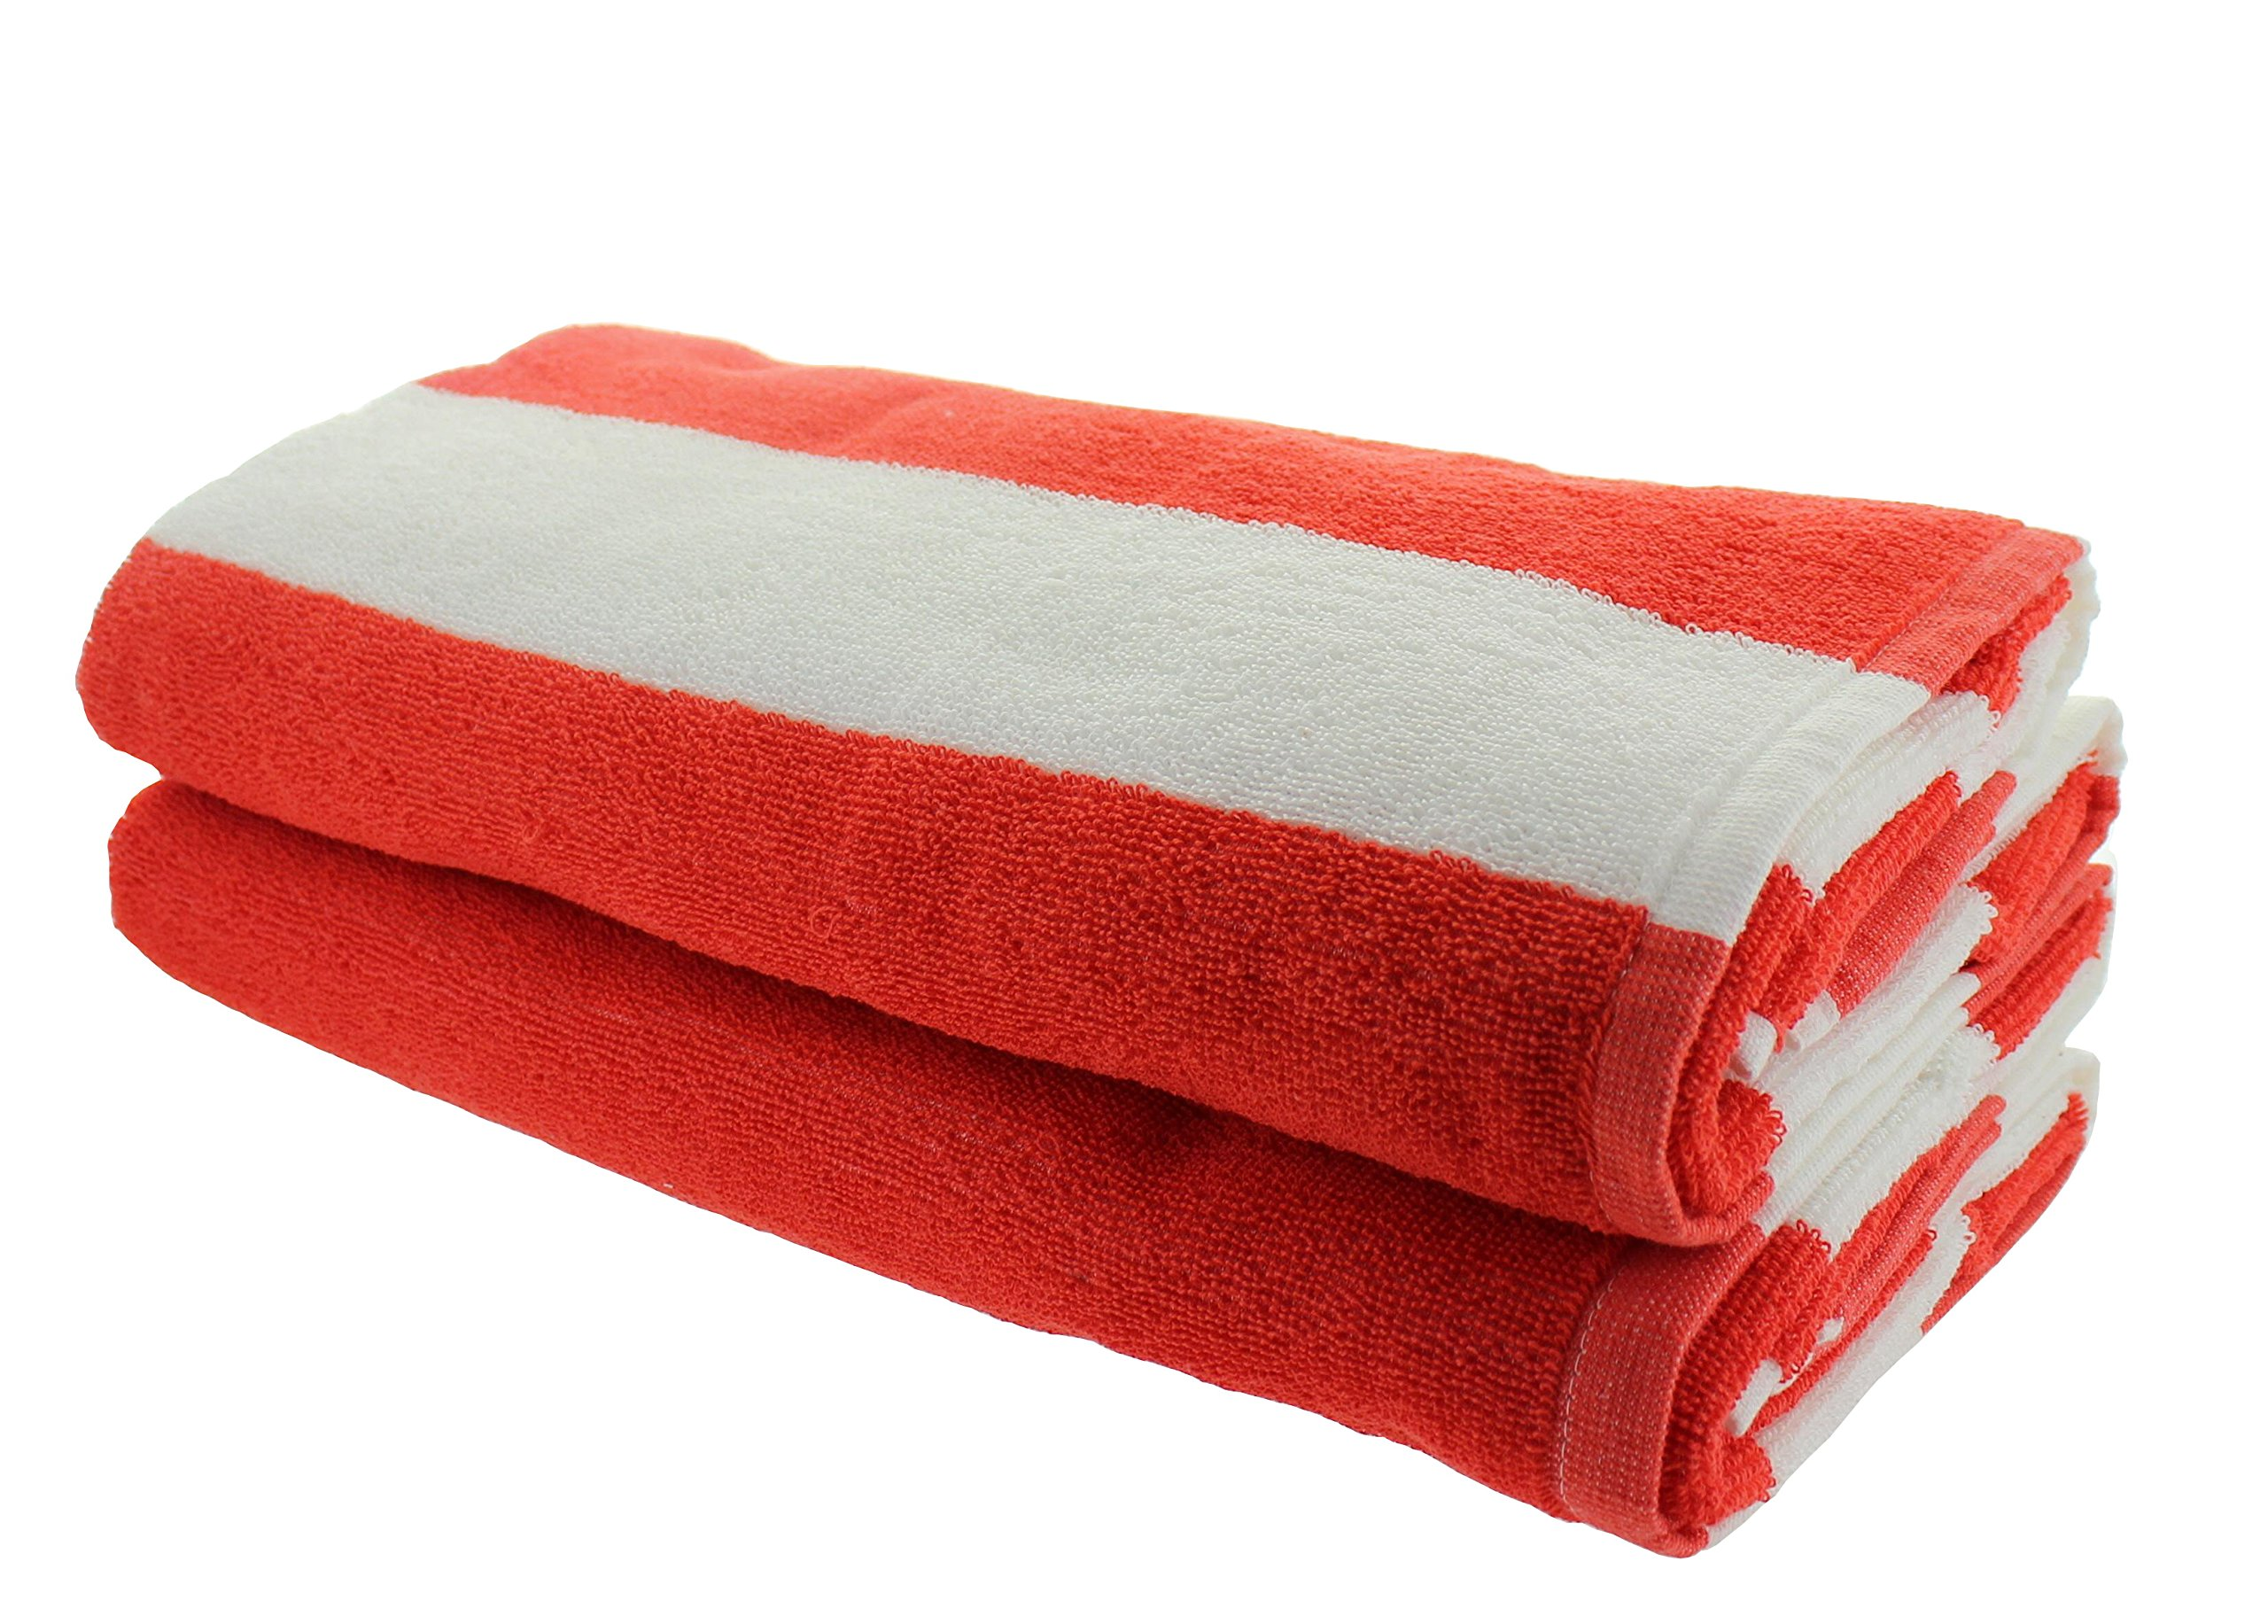 Everyday Resort Quality Cabana Beach Towels - Pack of 2 Cabana Orange Stripe Pool Towels 100% Cotton - Large 60'' by 30'' - Soft and Absorbent, Great for the Pool and the Beach! by Everyday